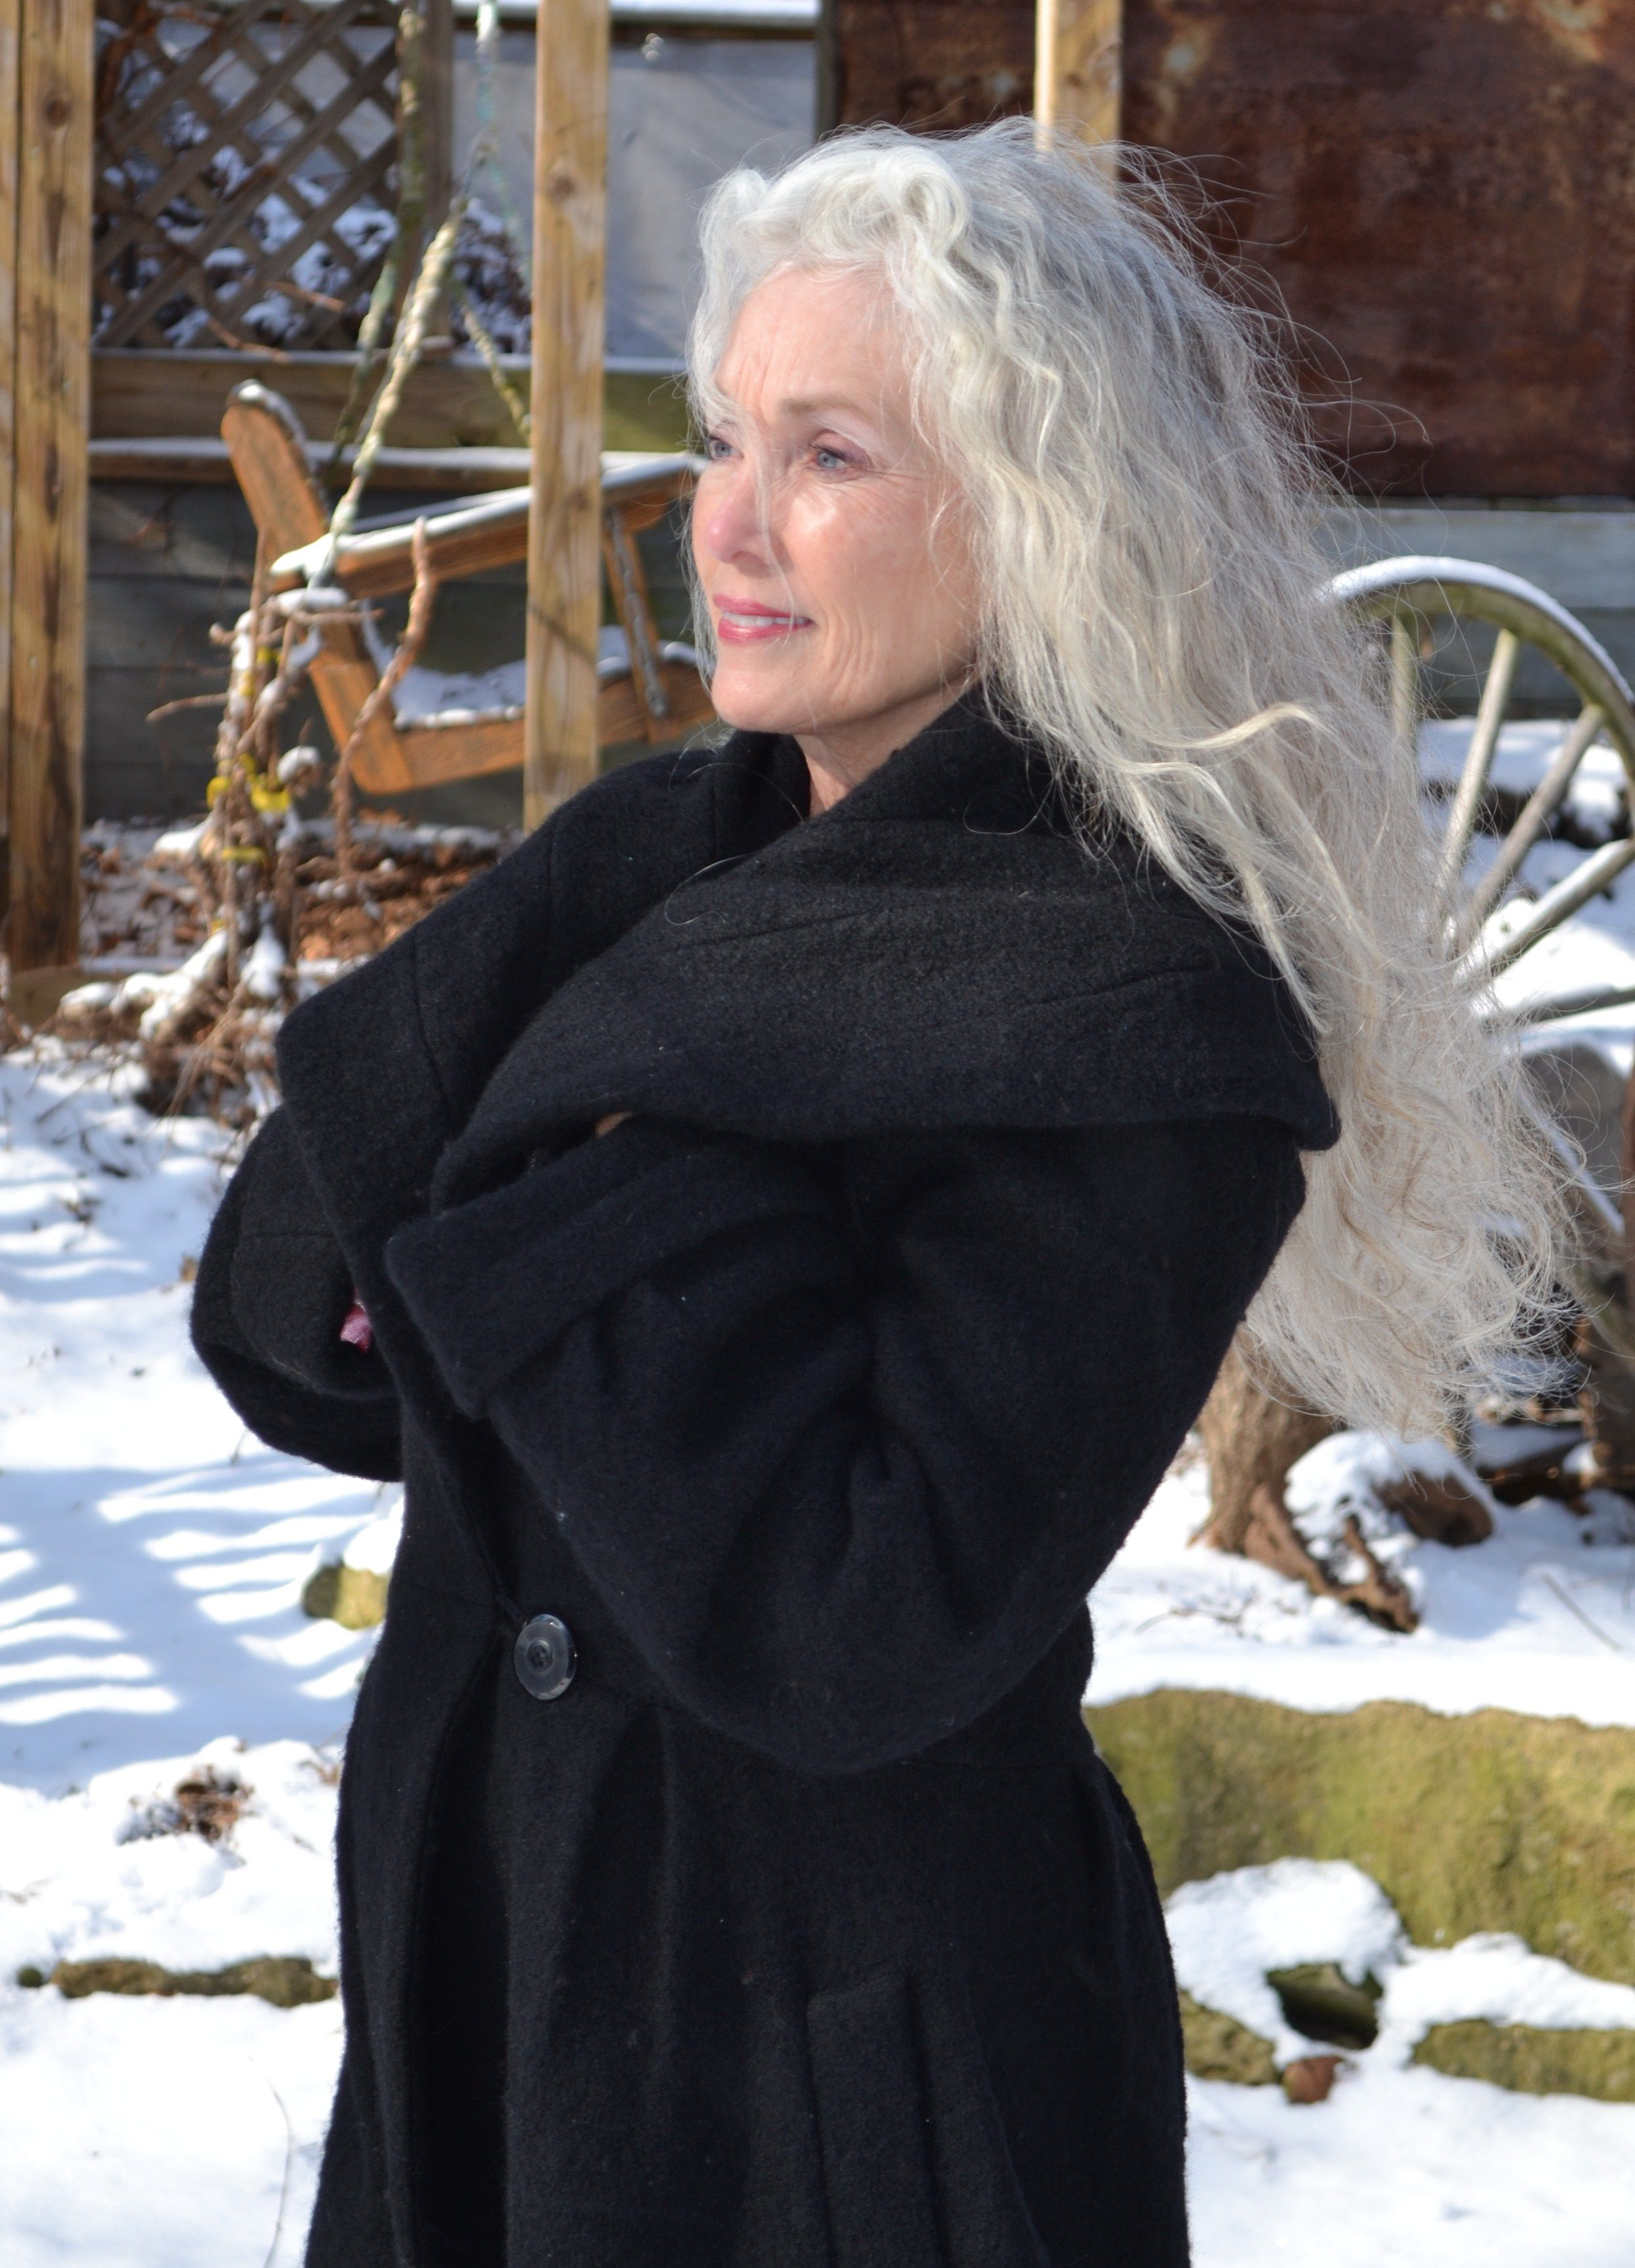 ALL BRAVE WOMEN OVER 60Let your hair grow white and